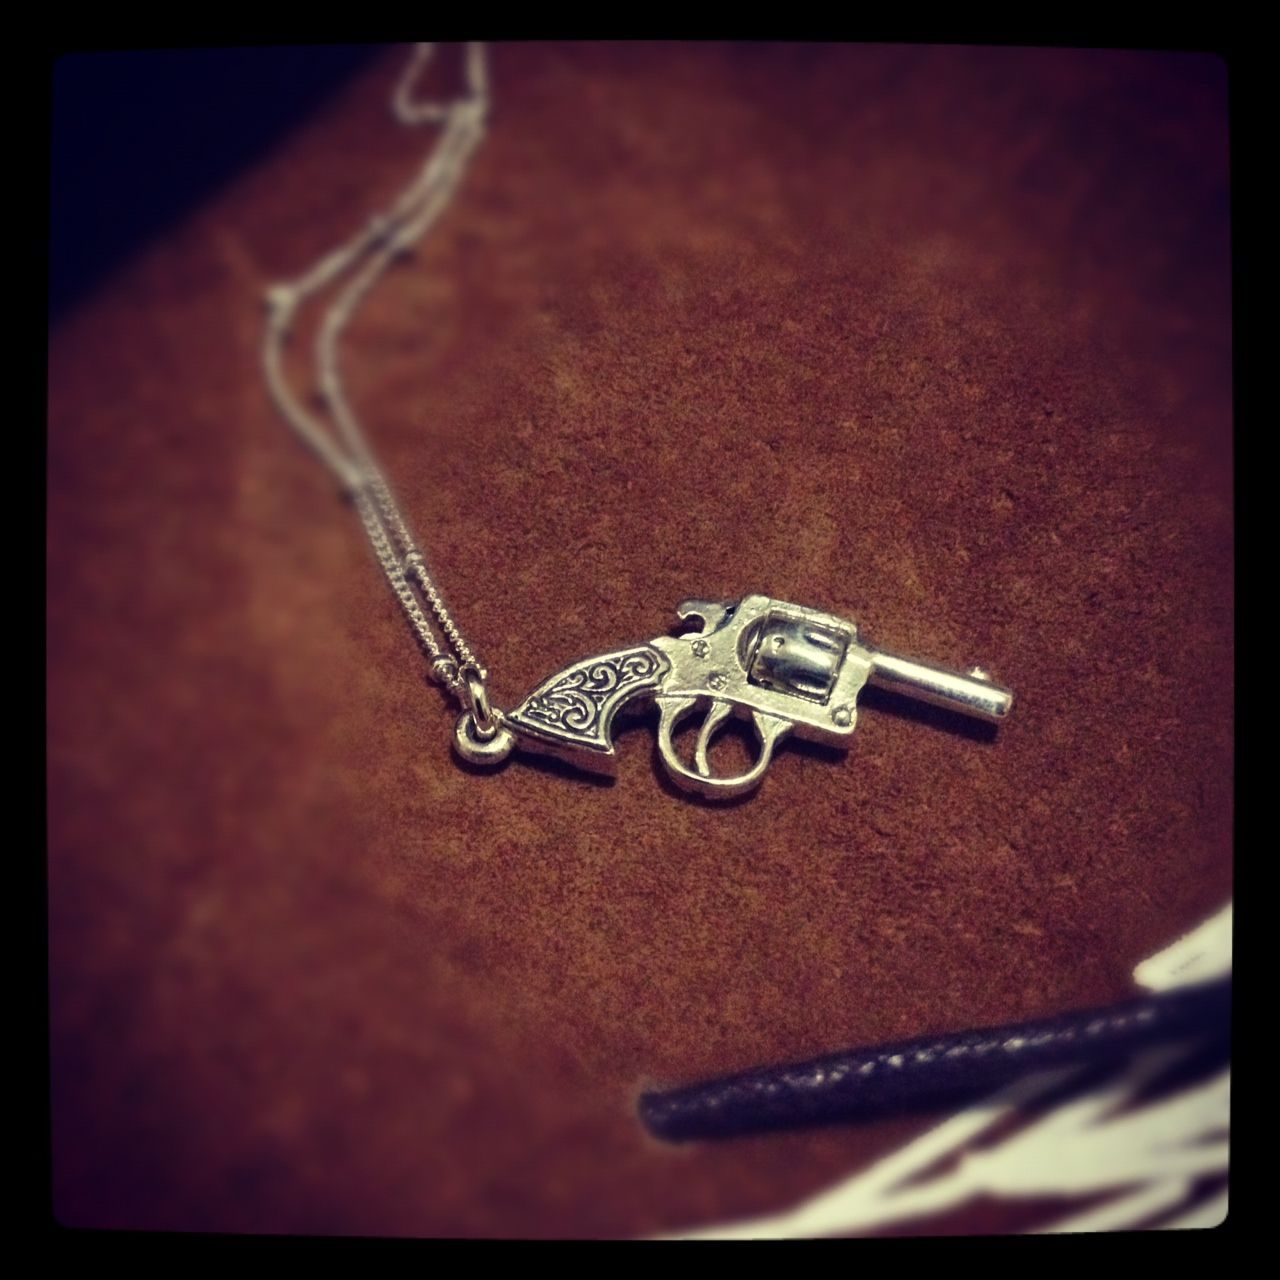 Vintage Revolver Pendant by Bowerbird.  Available at collectbowerbird.com